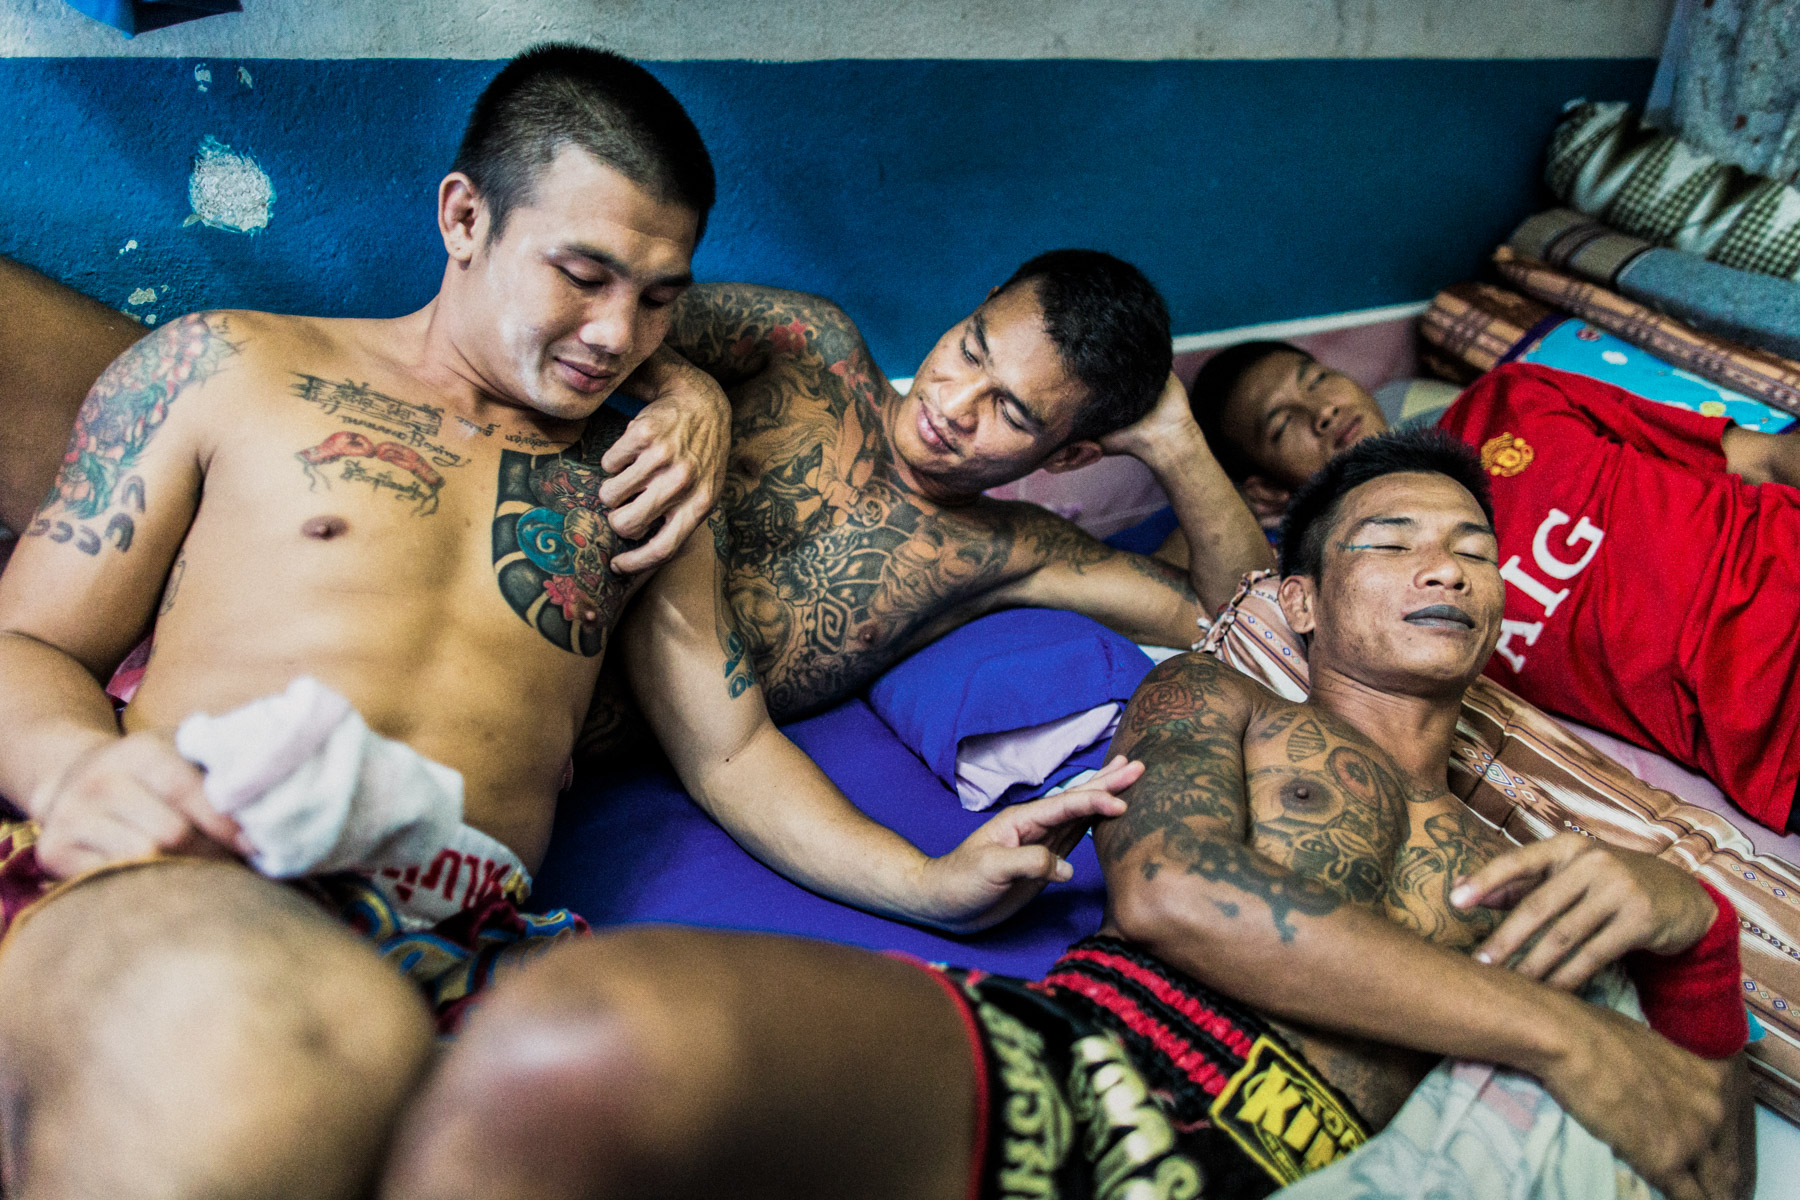 A quiet moment between inmates in Klong Prem prison on the outskirts of Bangkok, Thailand.